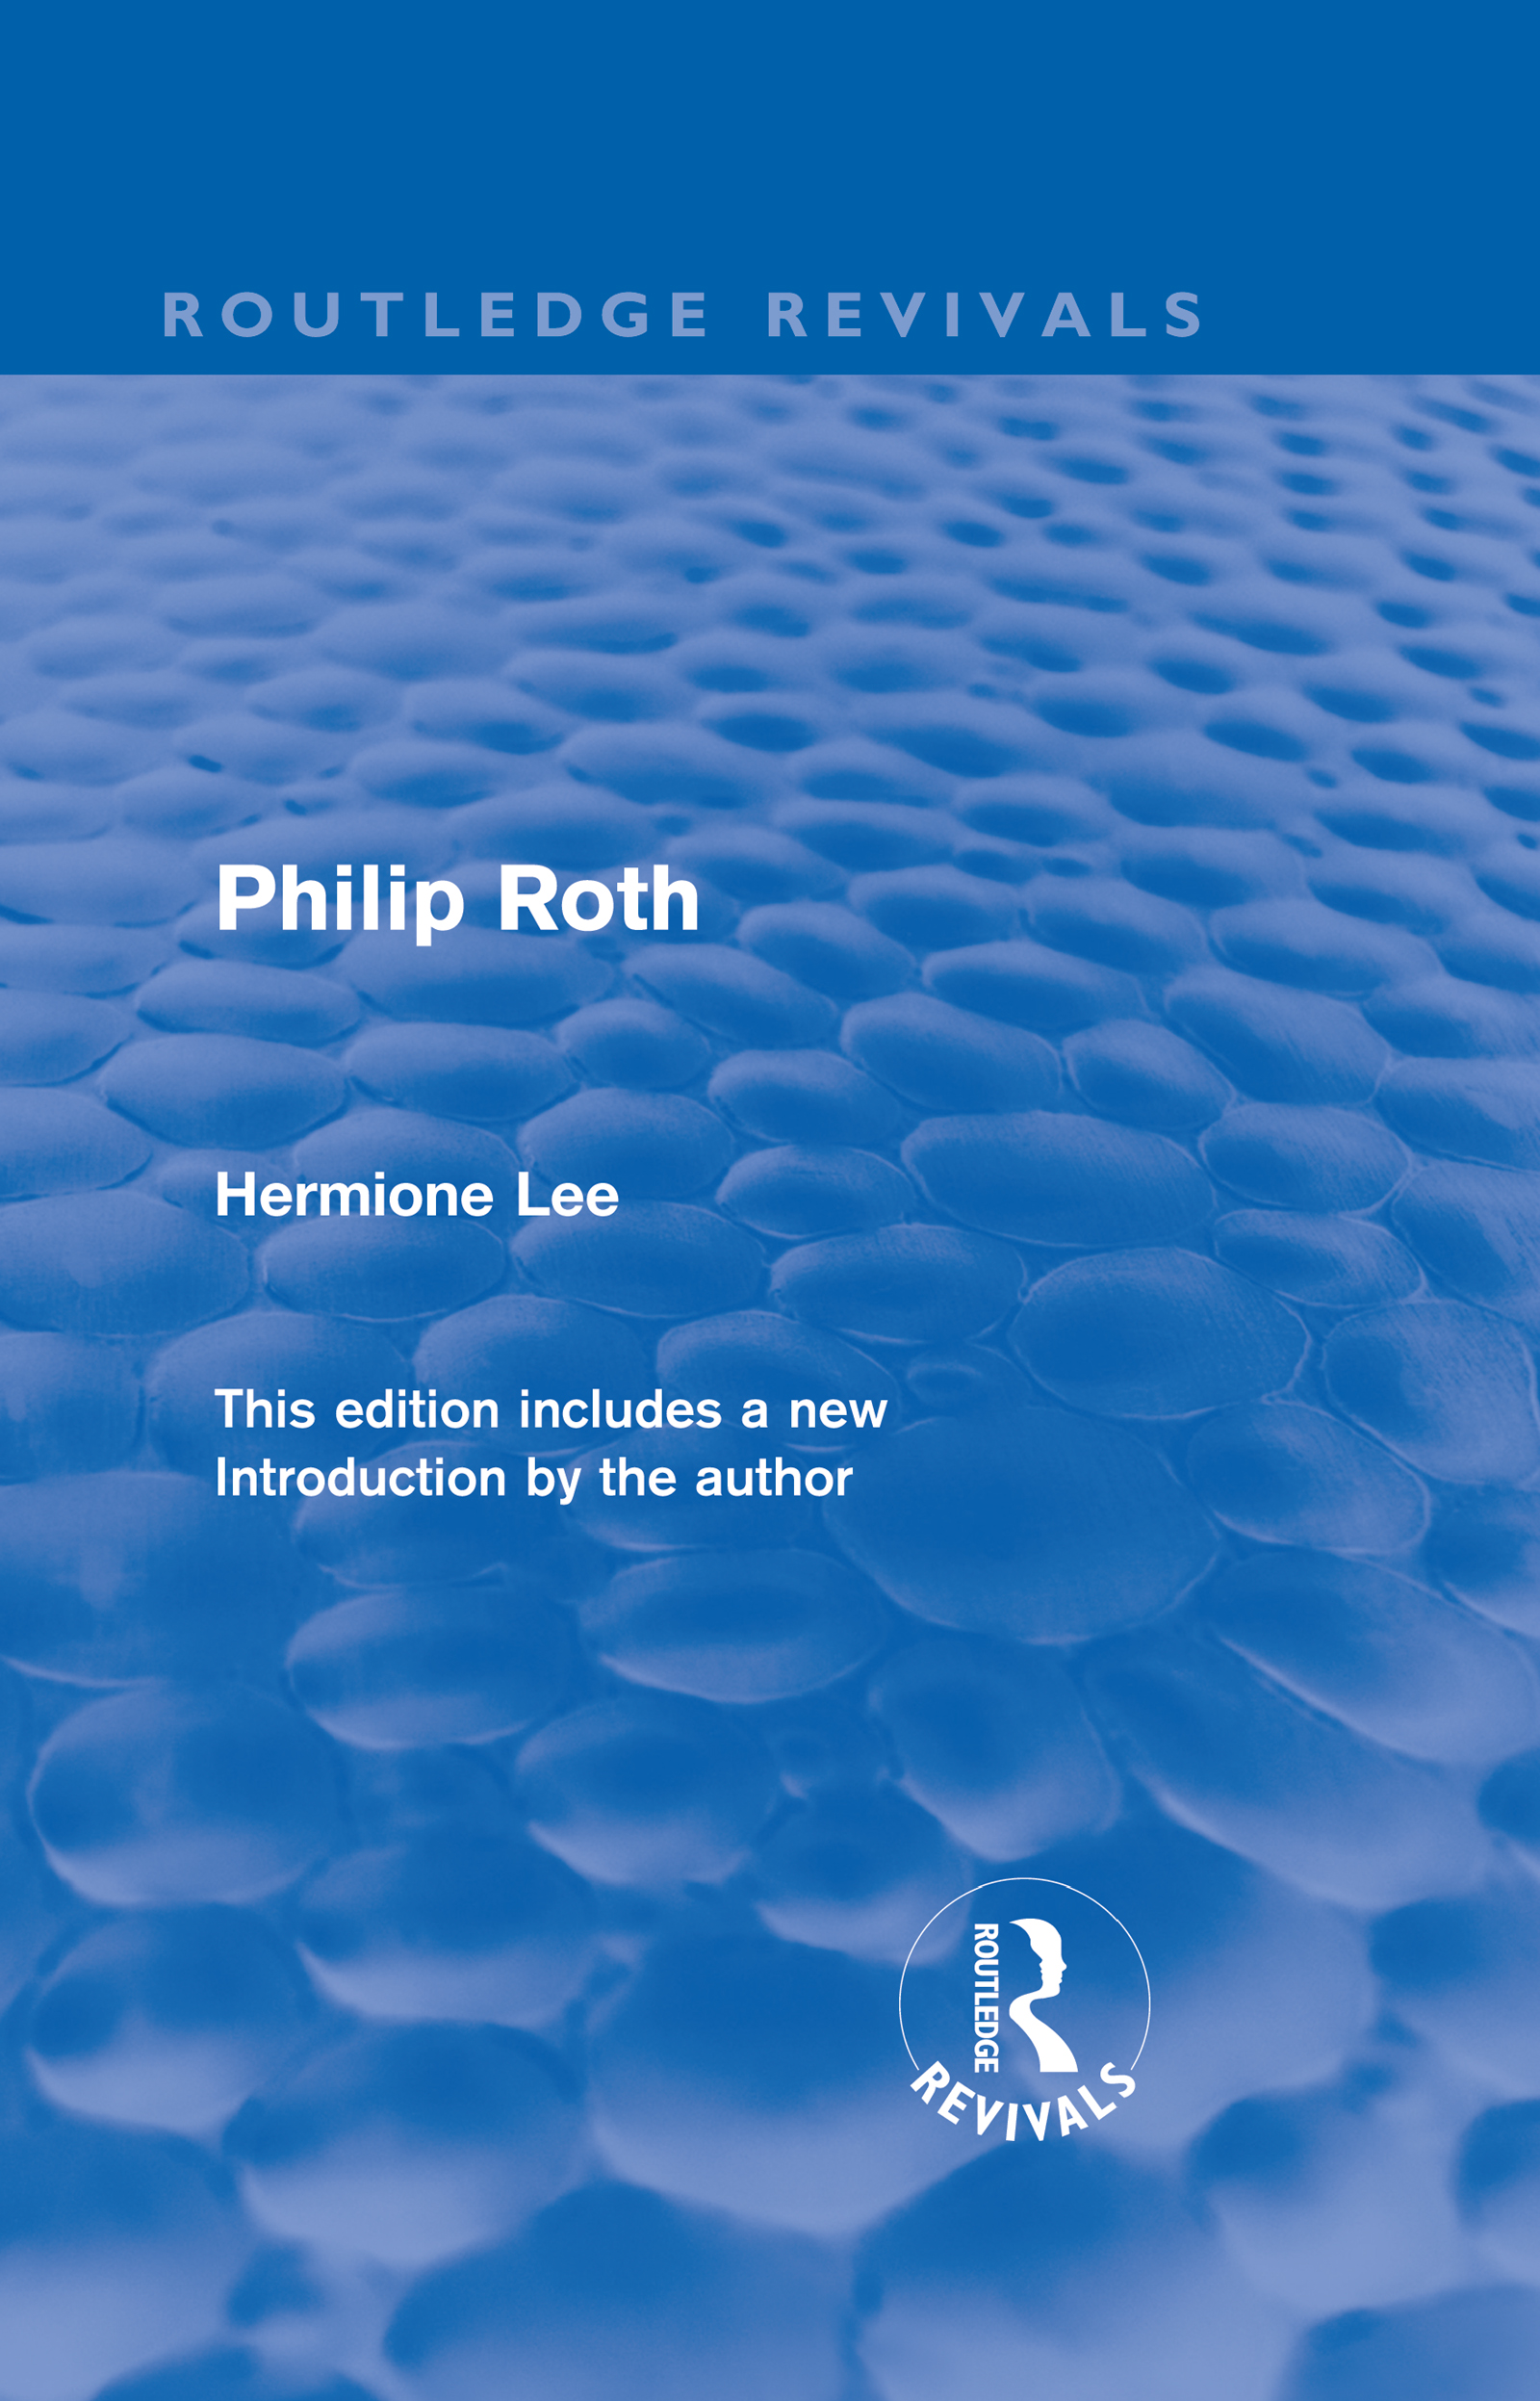 Philip Roth (Routledge Revivals) (Hardback) book cover